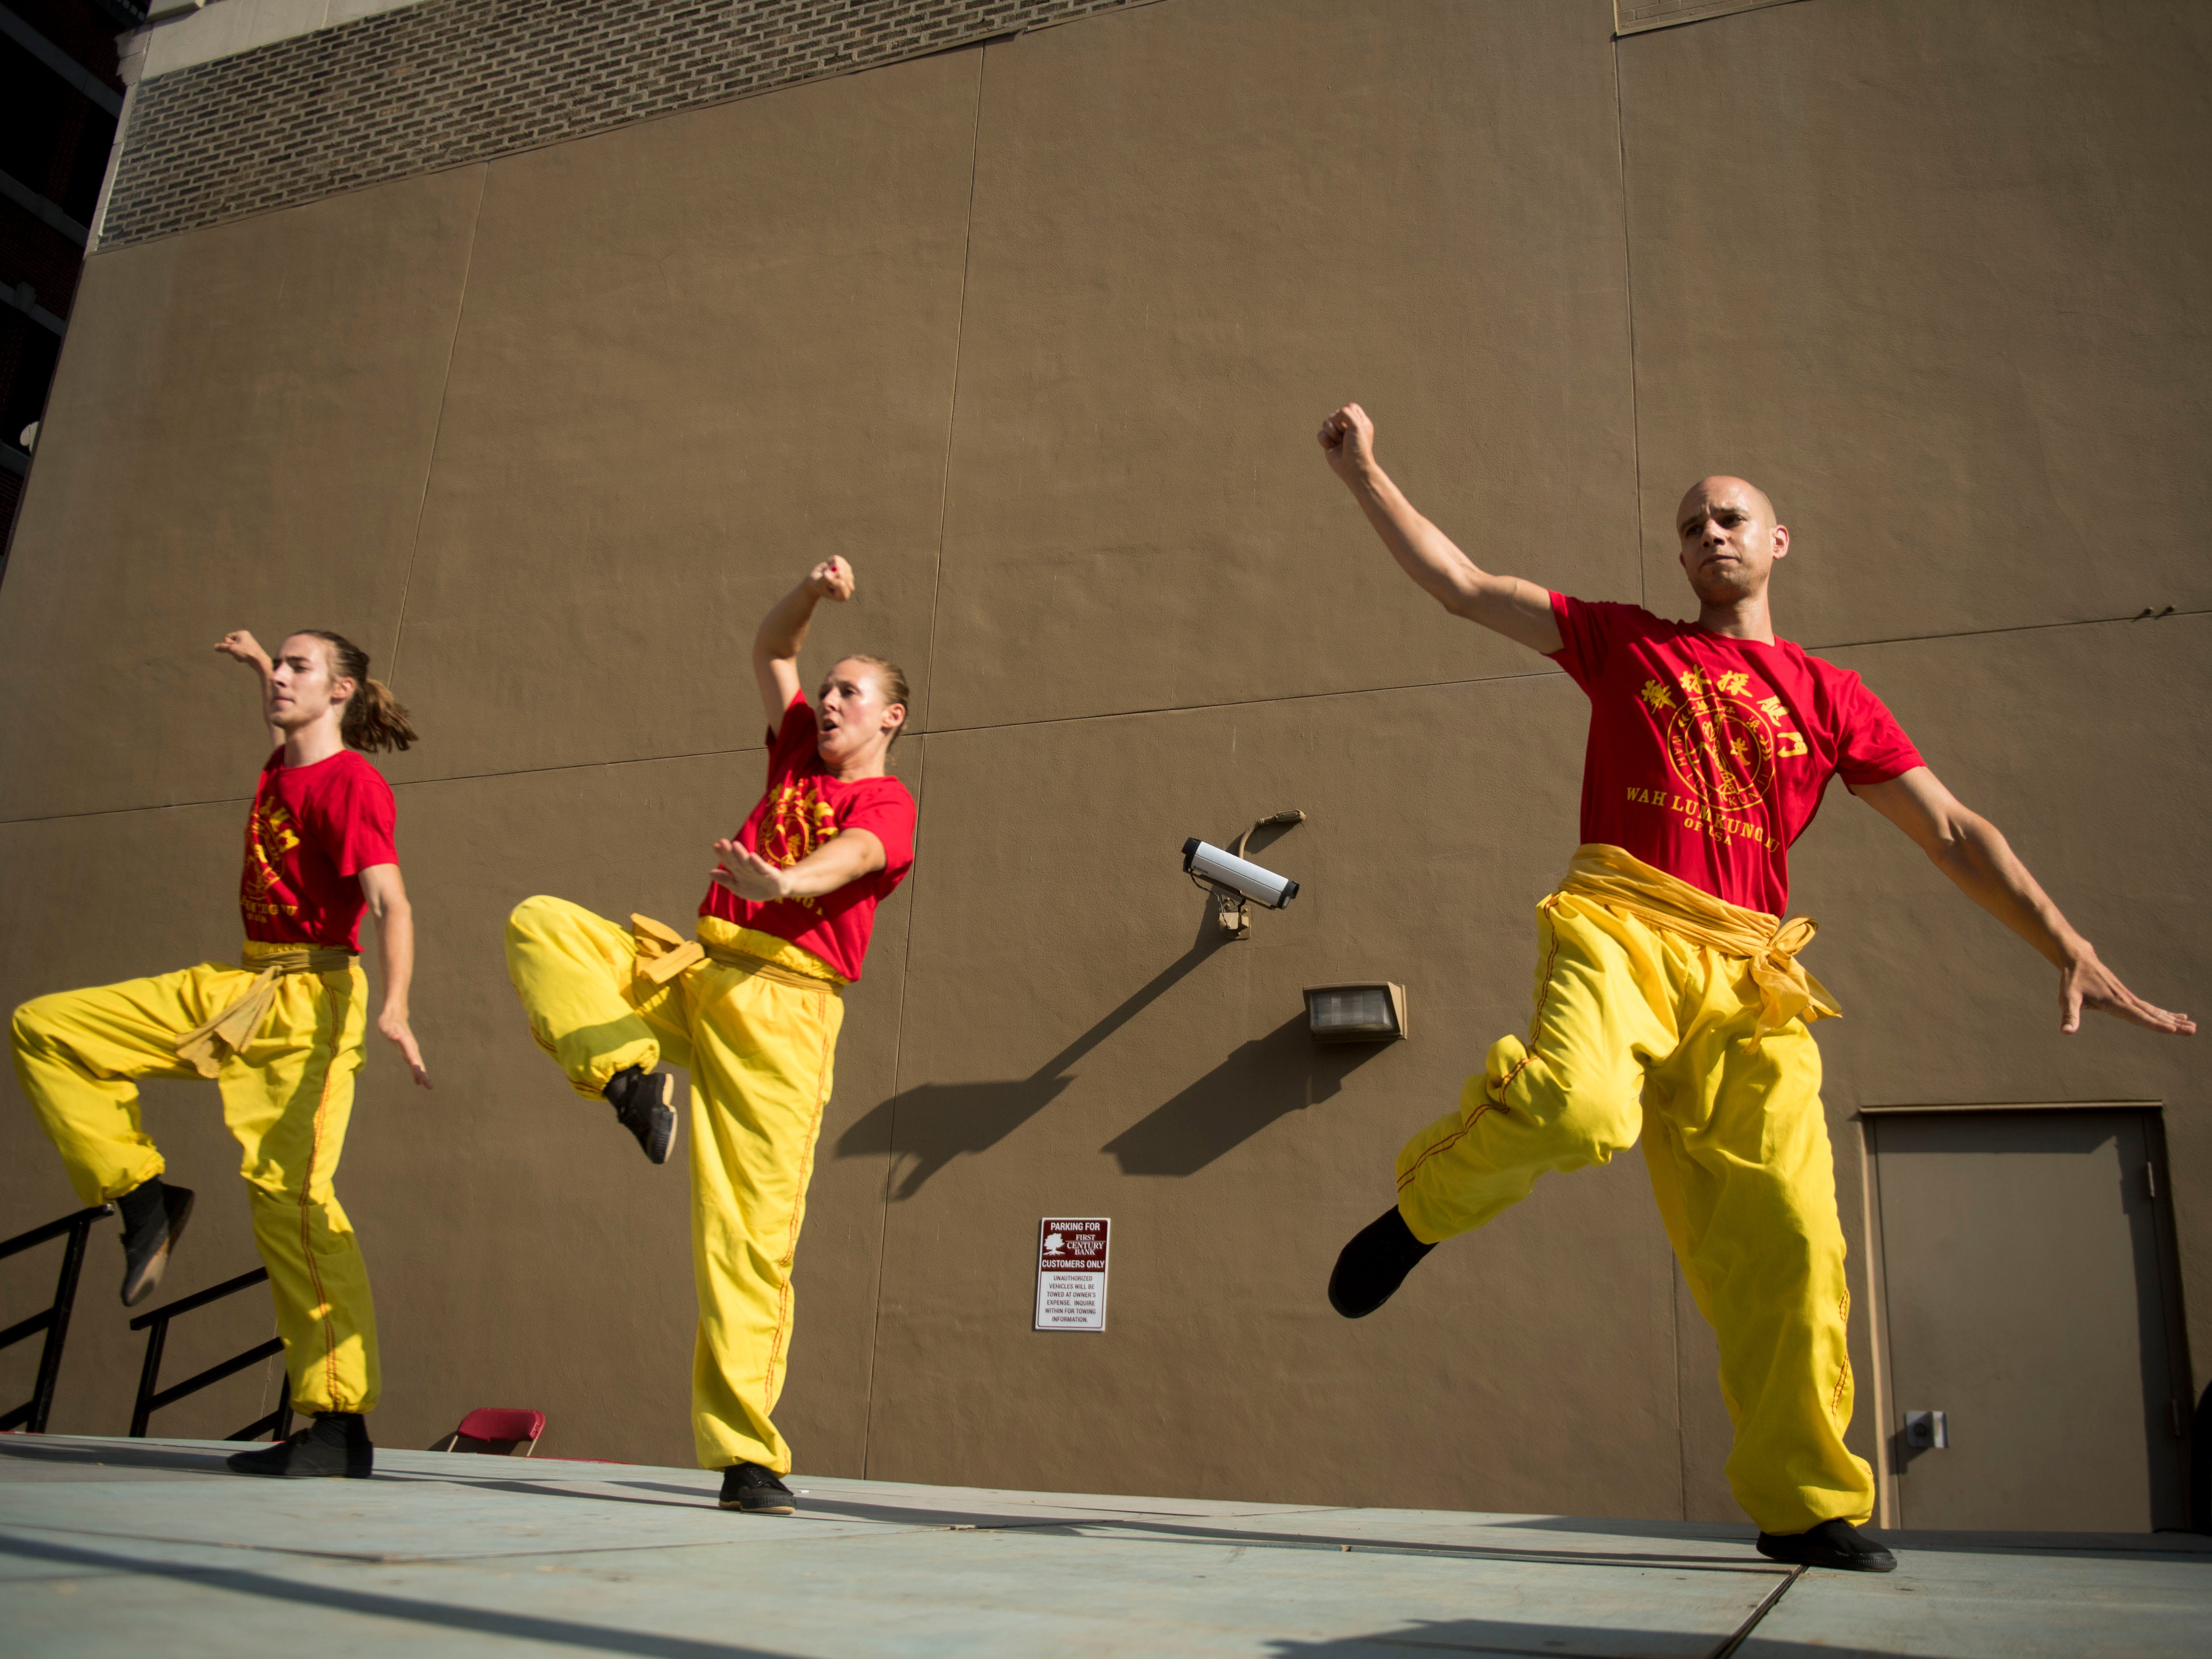 Wah Lum kung fu students demonstrate their skills during Knox Asian Festival on Sunday, August 26, 2018.